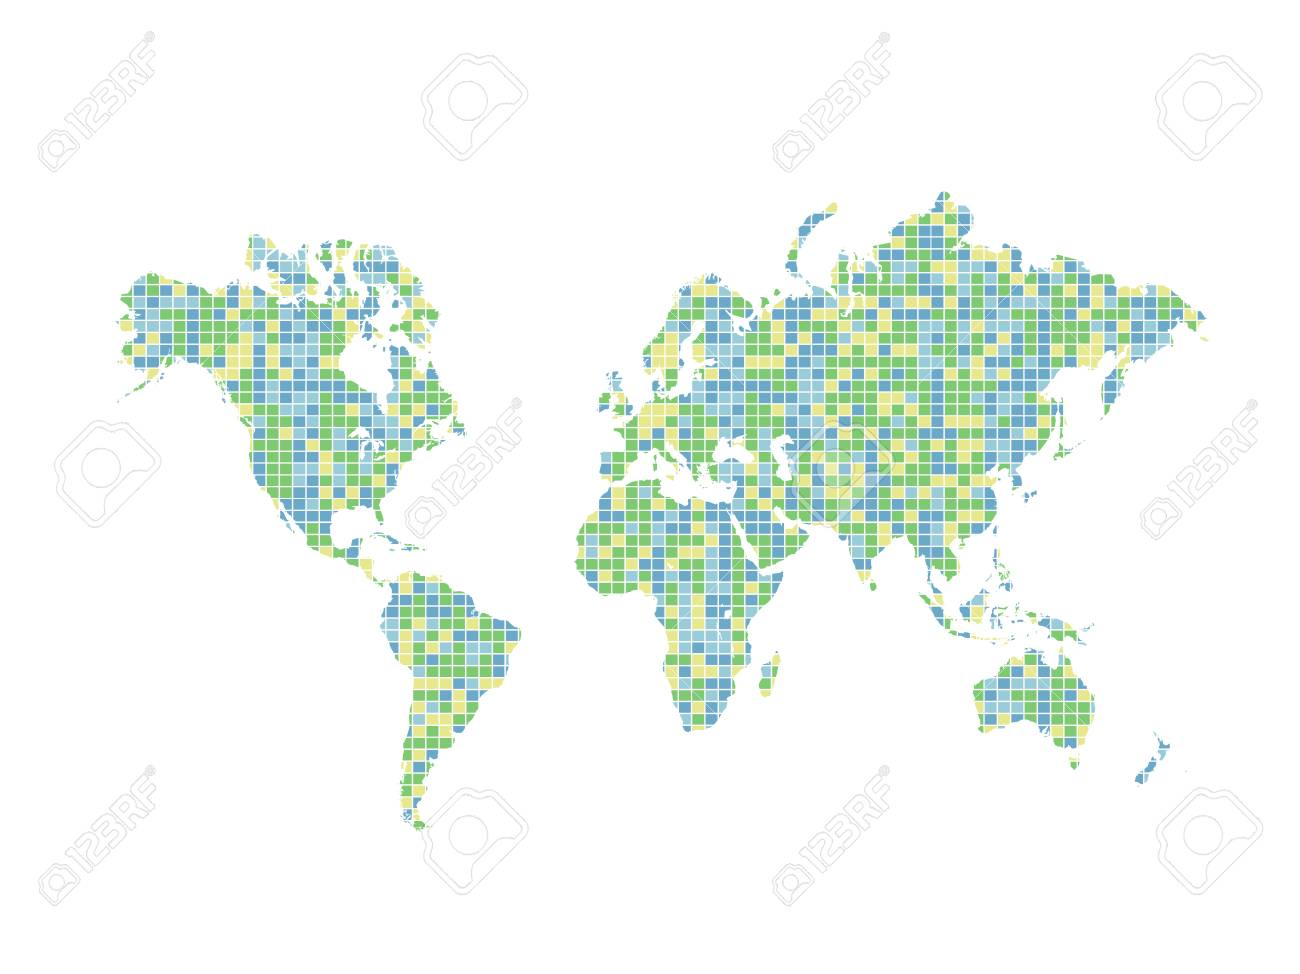 Illustration of a colorful world map design isolated on a white illustration of a colorful world map design isolated on a white background stock vector gumiabroncs Gallery